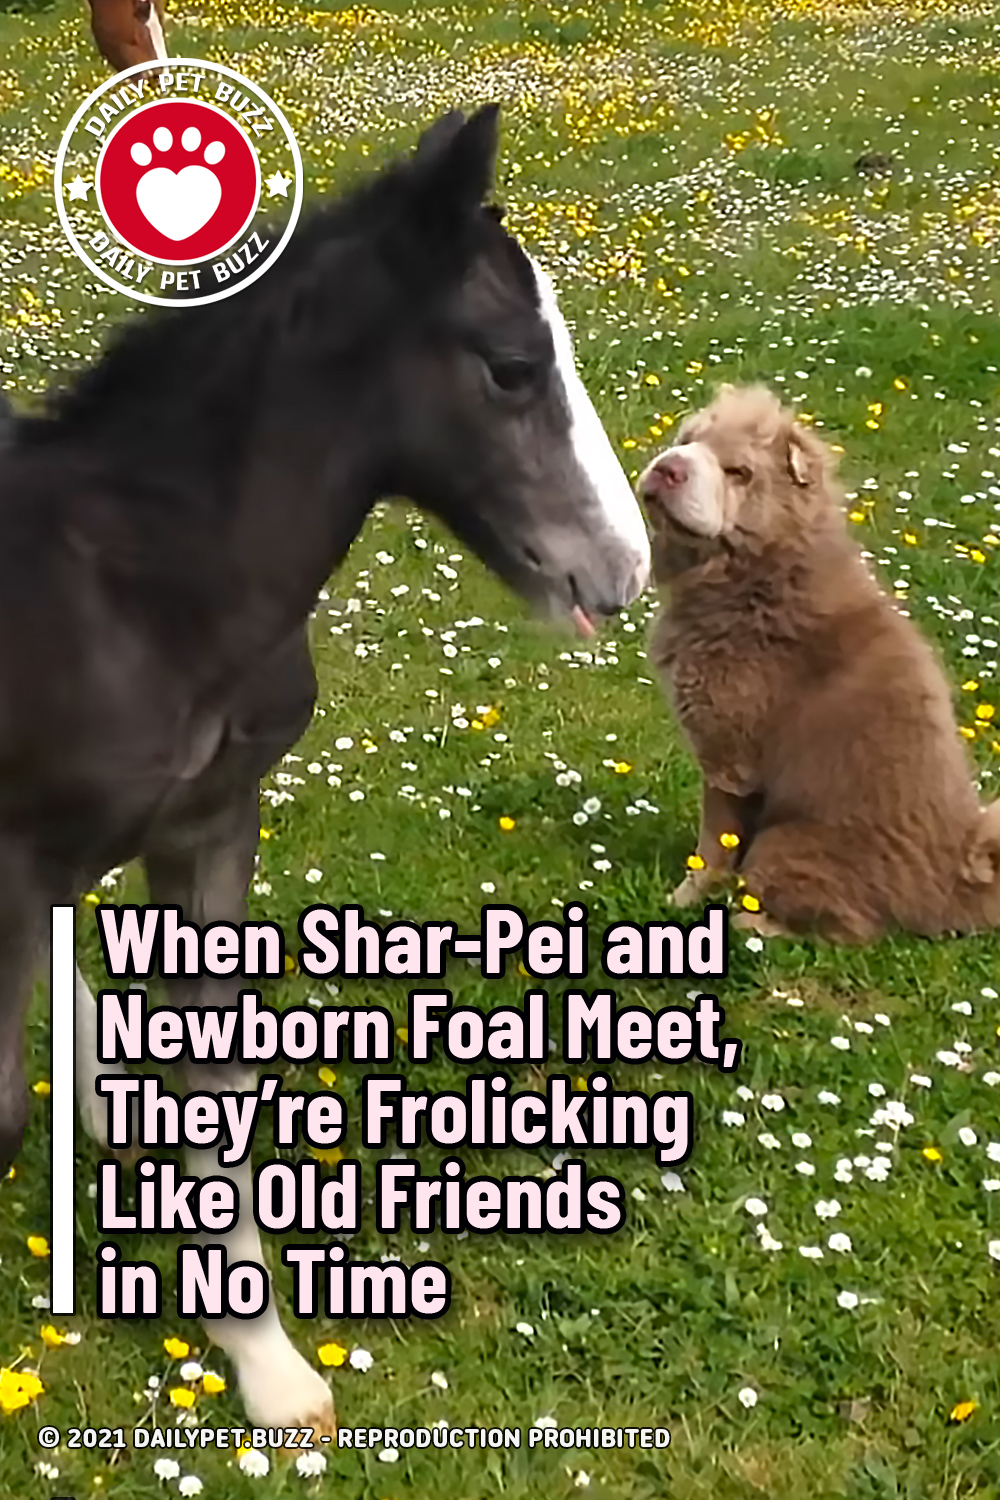 When Shar-Pei and Newborn Foal Meet, They're Frolicking Like Old Friends in No Time